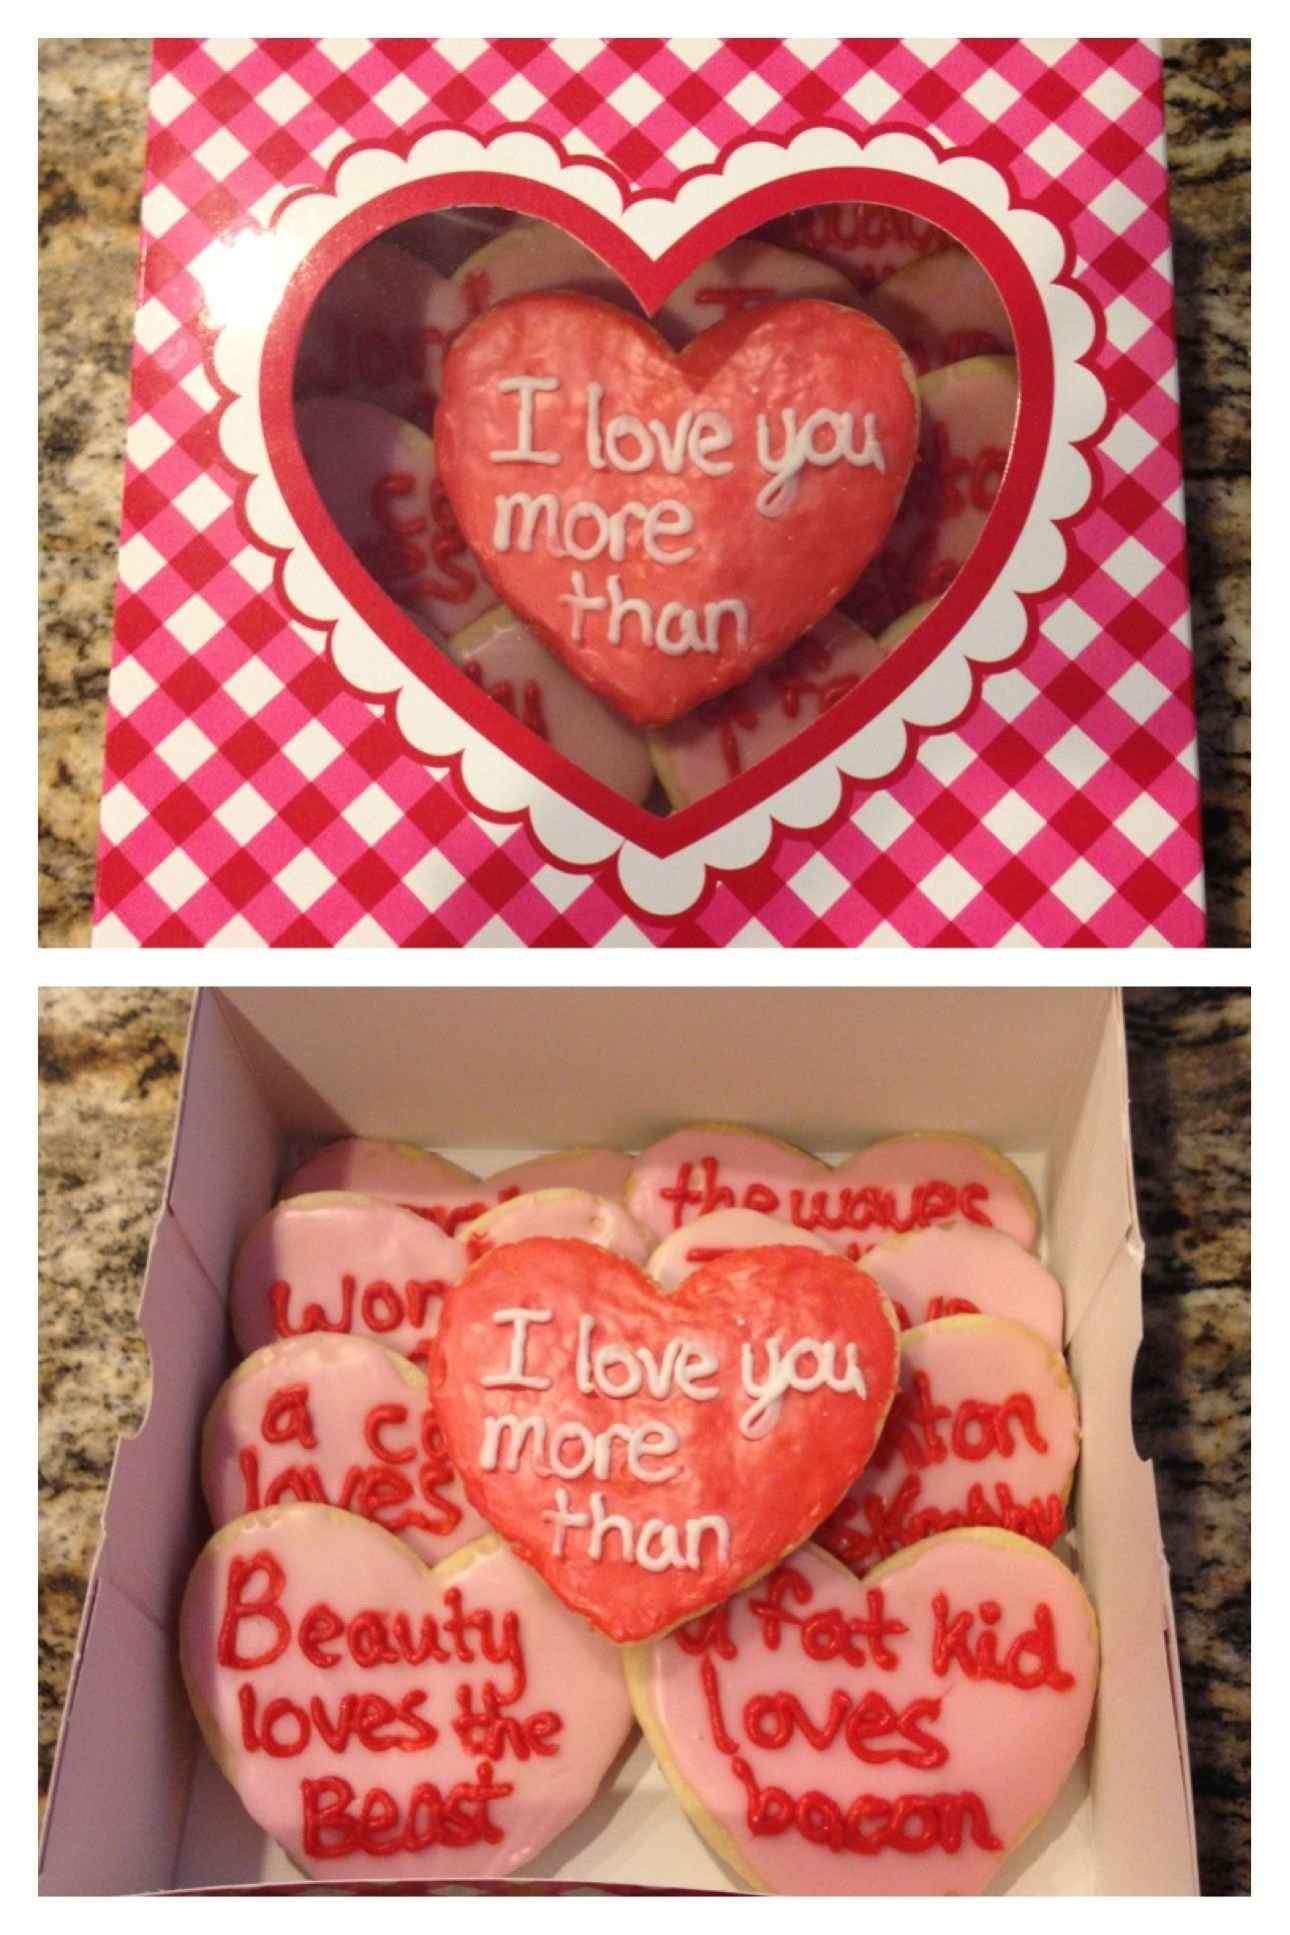 10 Trendy Cute Valentines Day Ideas For Husband cute for a boyfriend or husband on valentines day projects to 2020